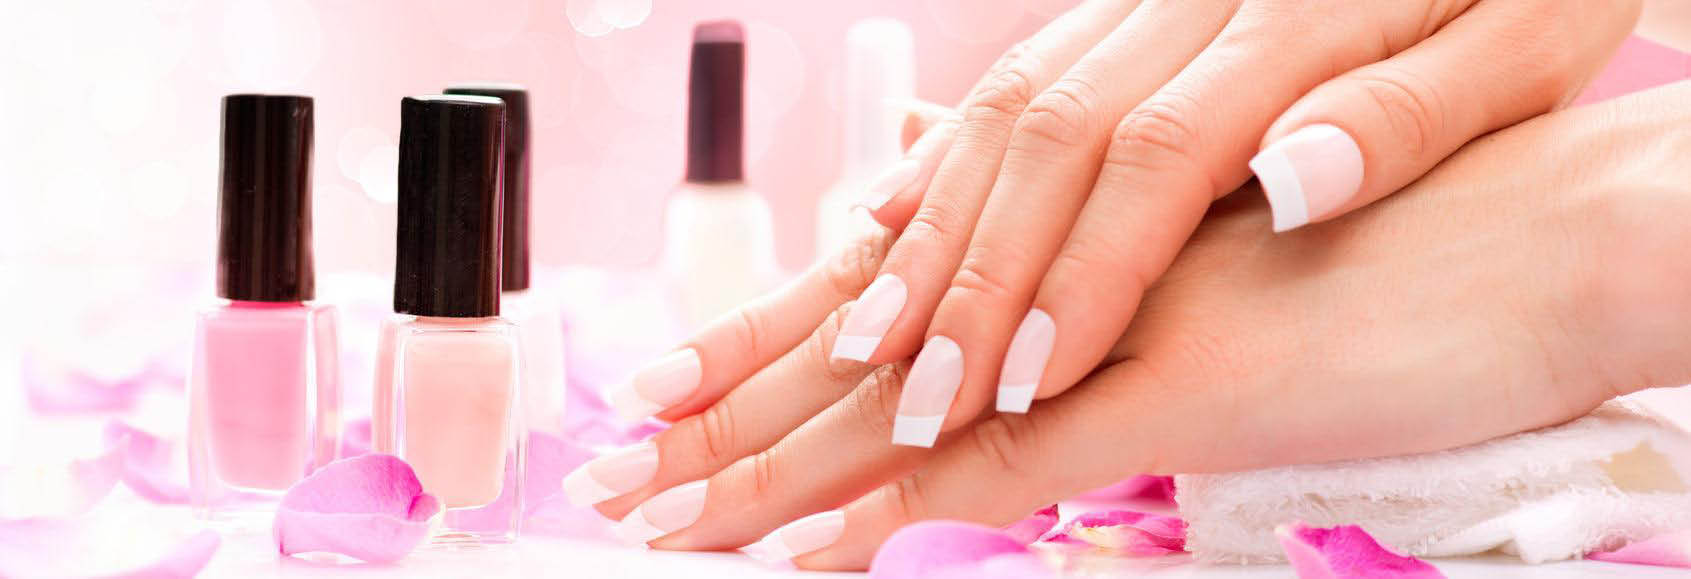 Discount manicures pedicures eyebrow treatment skin care beautiful french manicure nail tips from happy nails spa banner prinsesfo Gallery